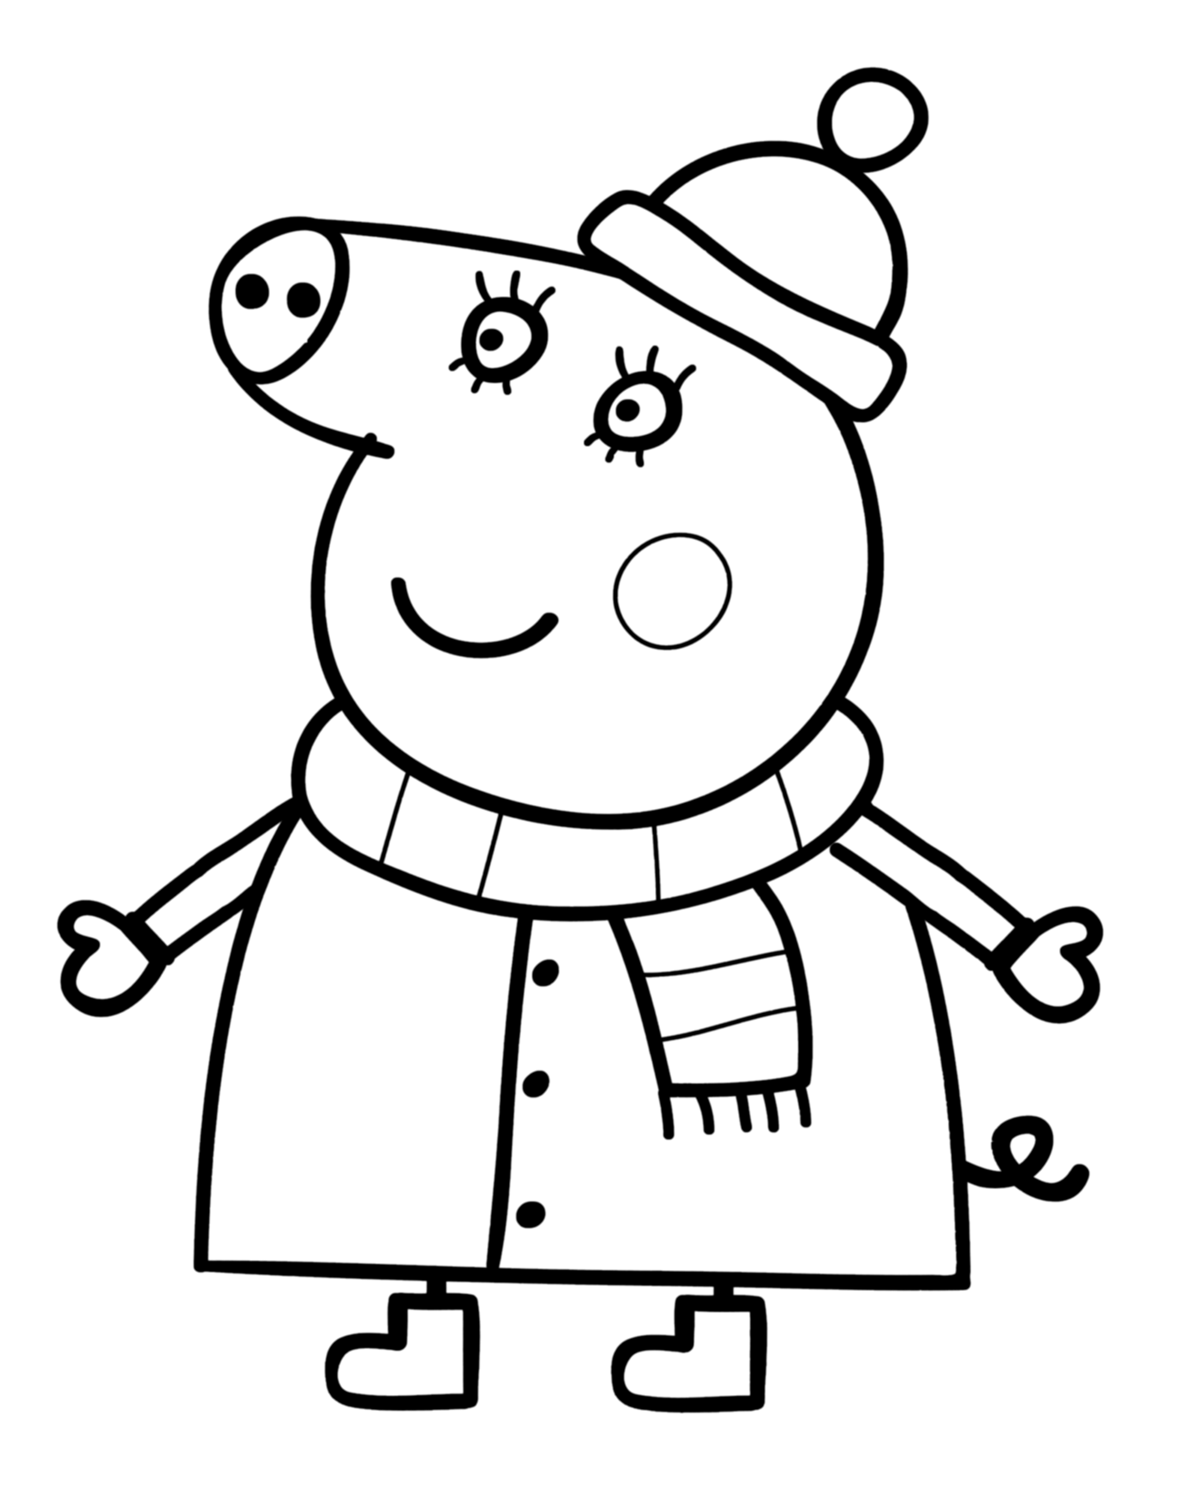 peppa pig coloring 30 printable peppa pig coloring pages you won39t find anywhere coloring pig peppa